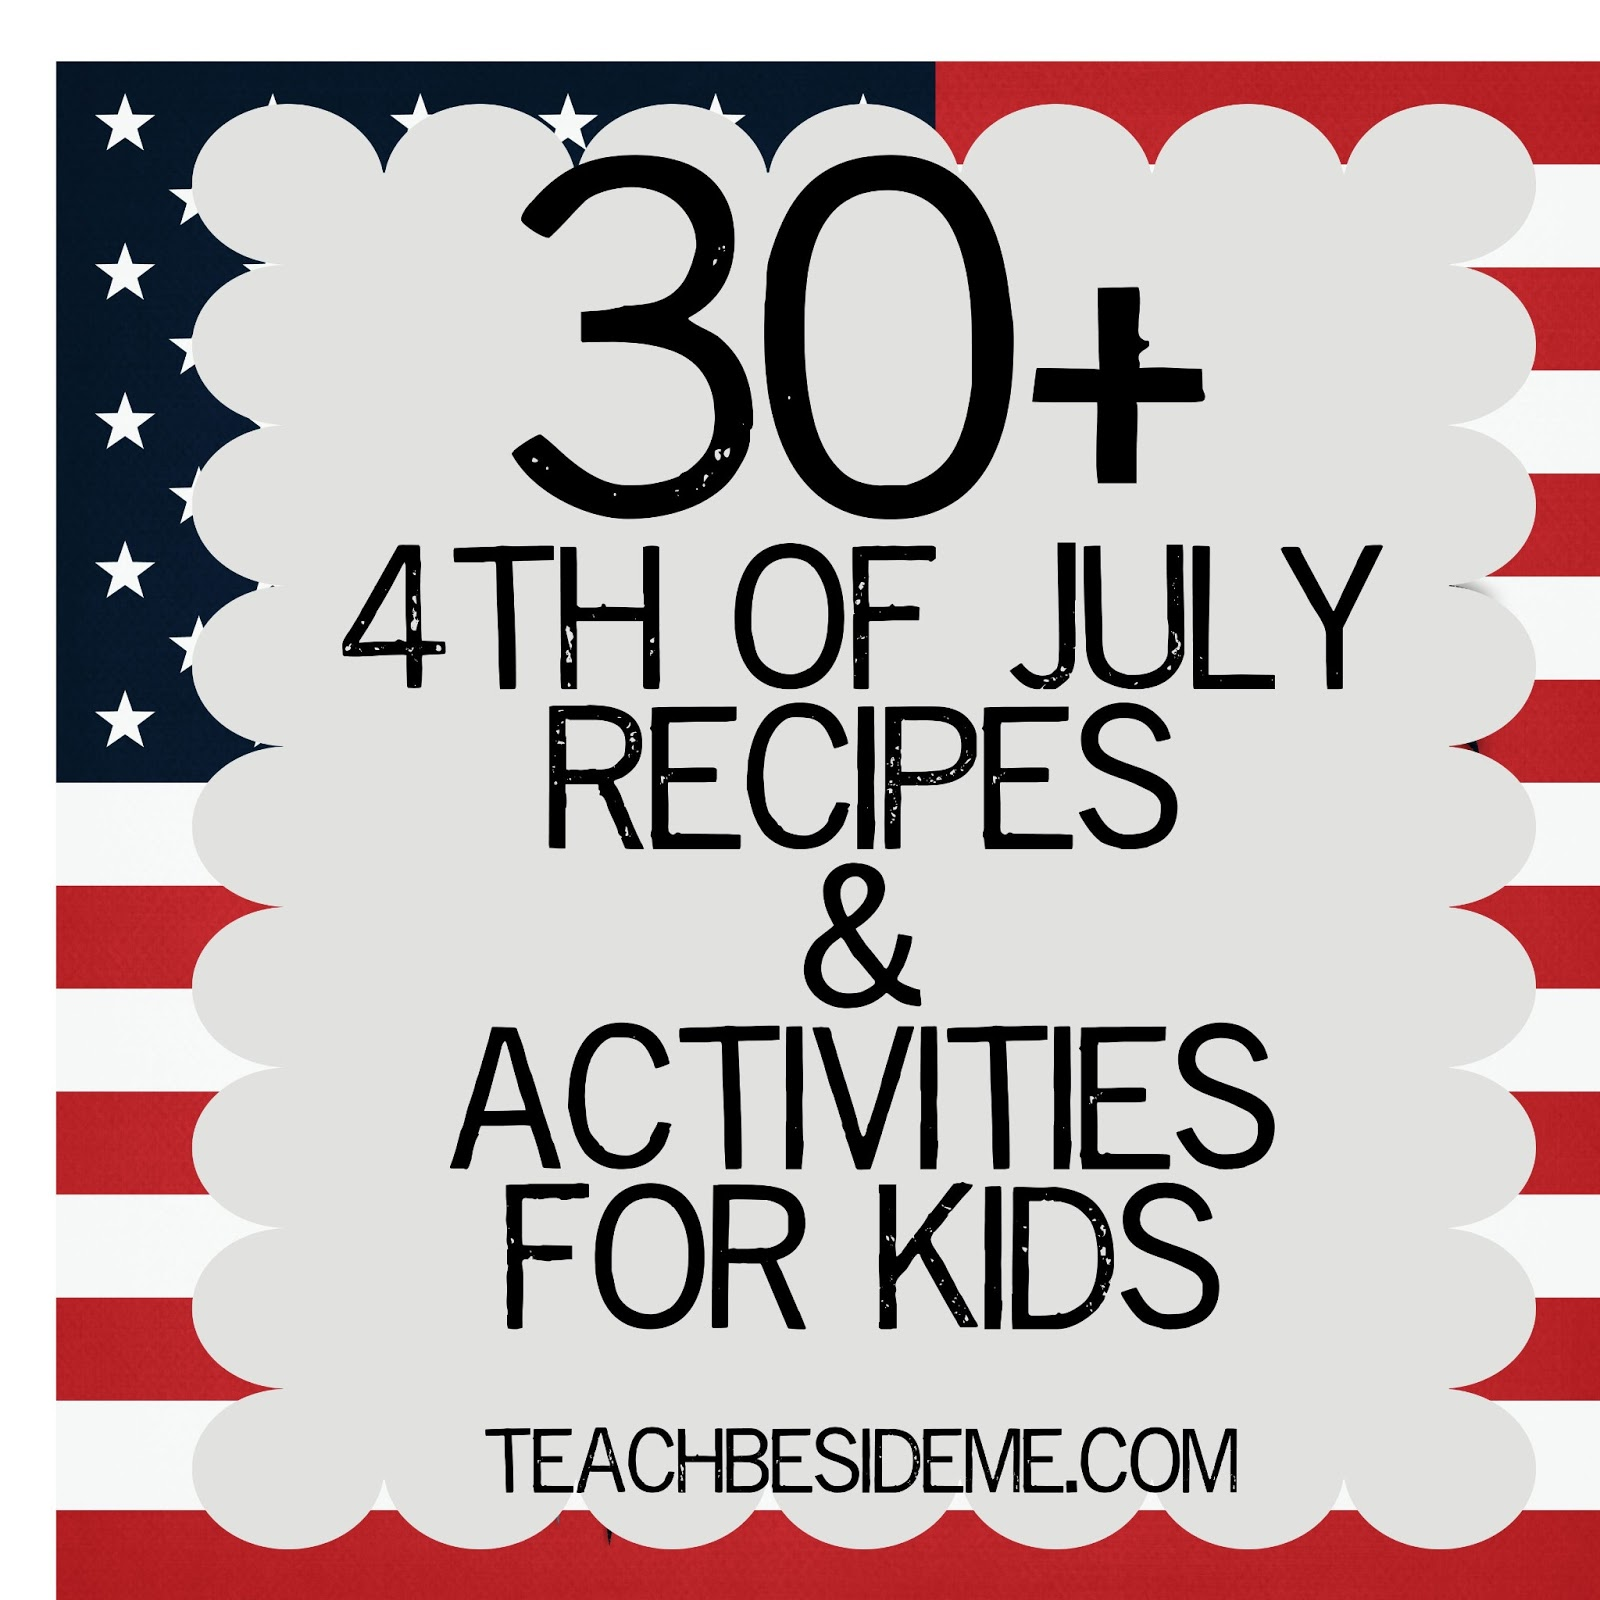 May The Fourth Be With You School Activities: 4th Of July Crafts, Activities & Recipes!